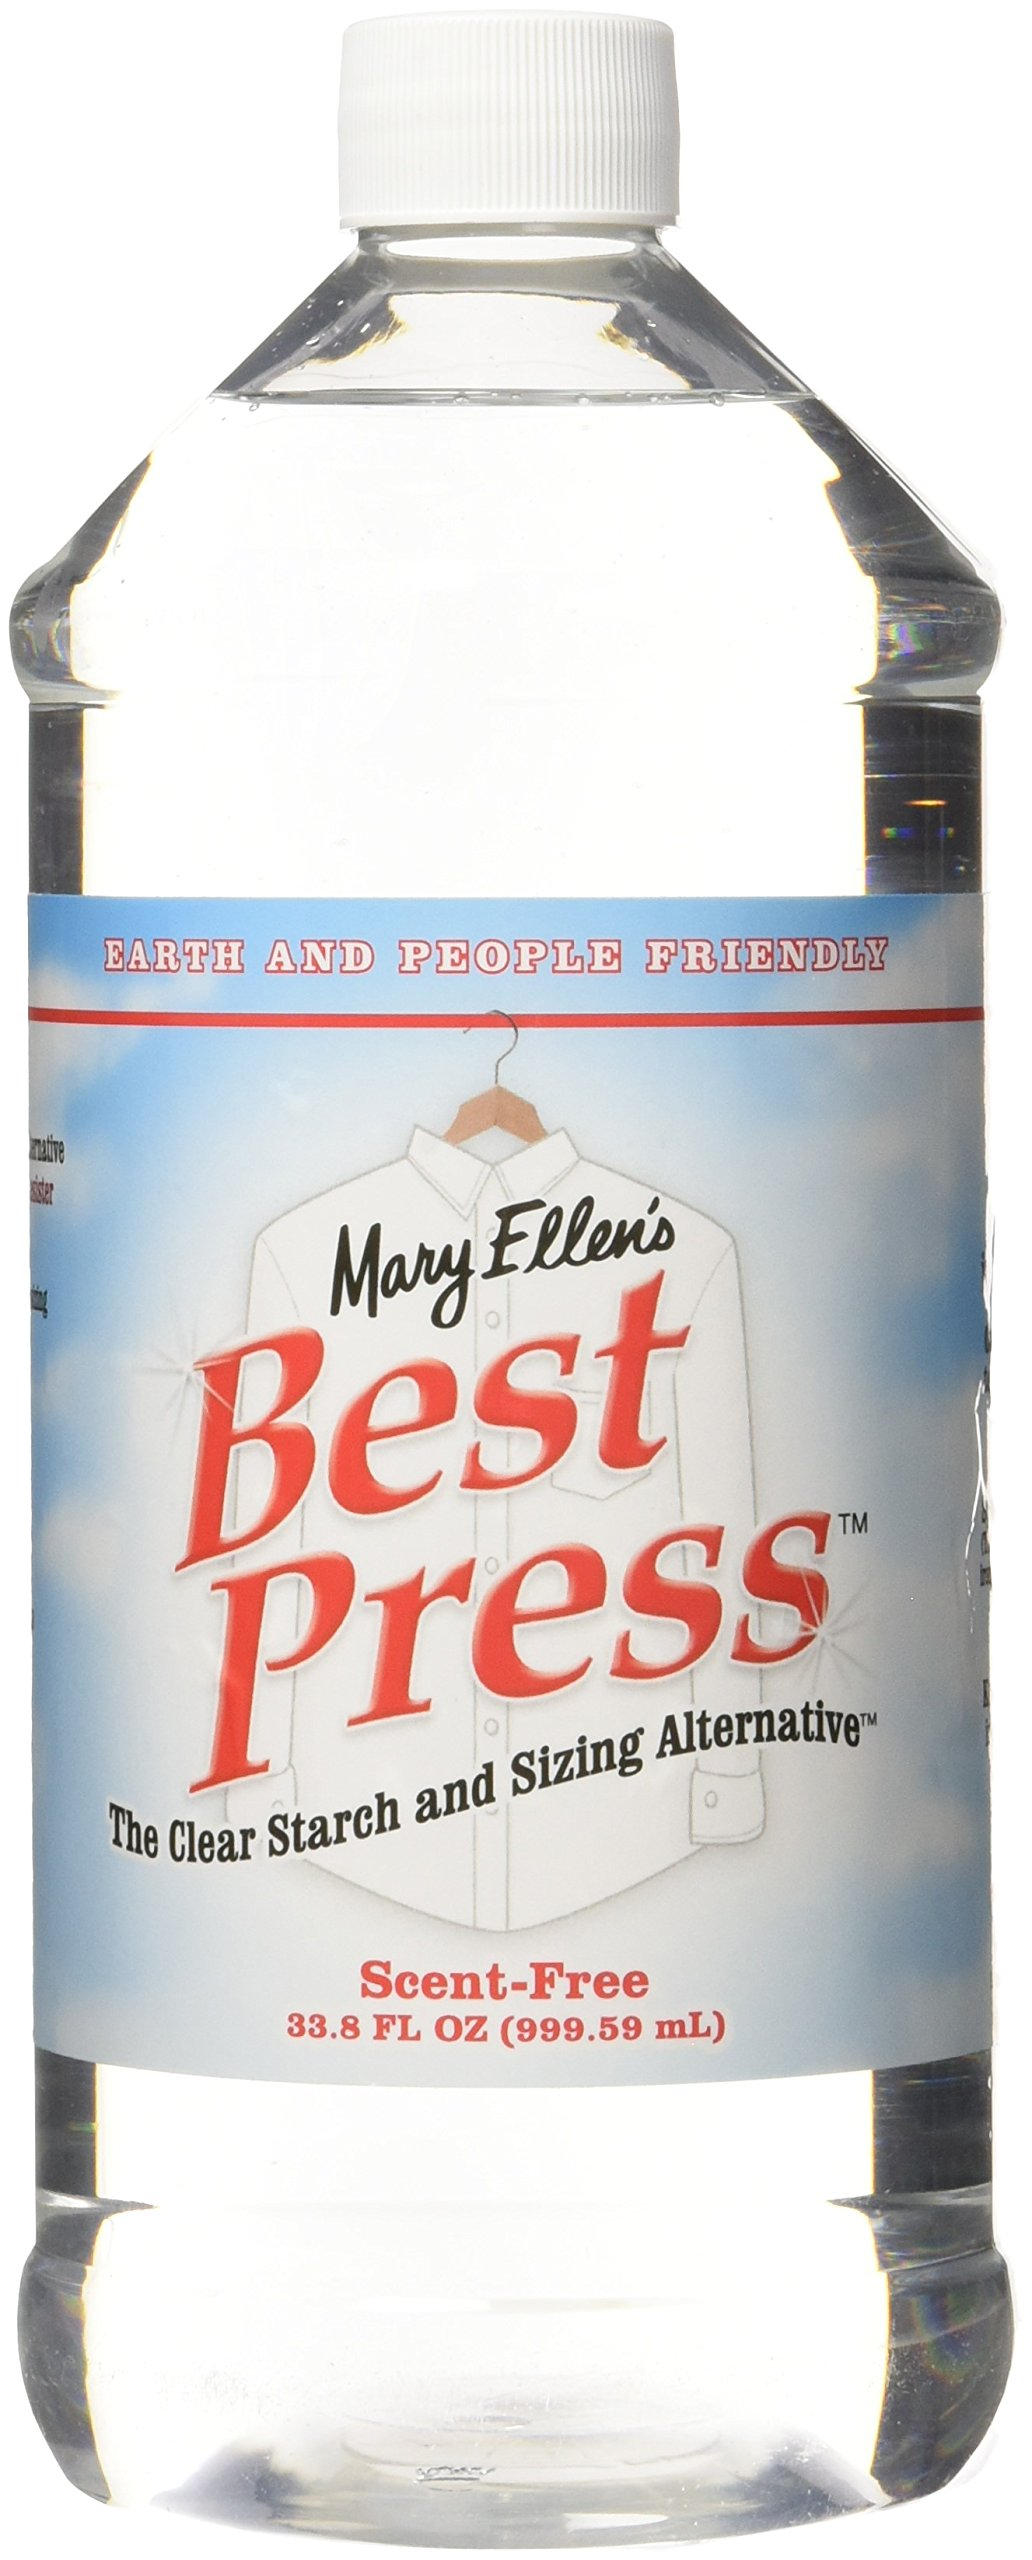 Mary Ellen's Best Press Refills 33.8 Ounces-Scent Free